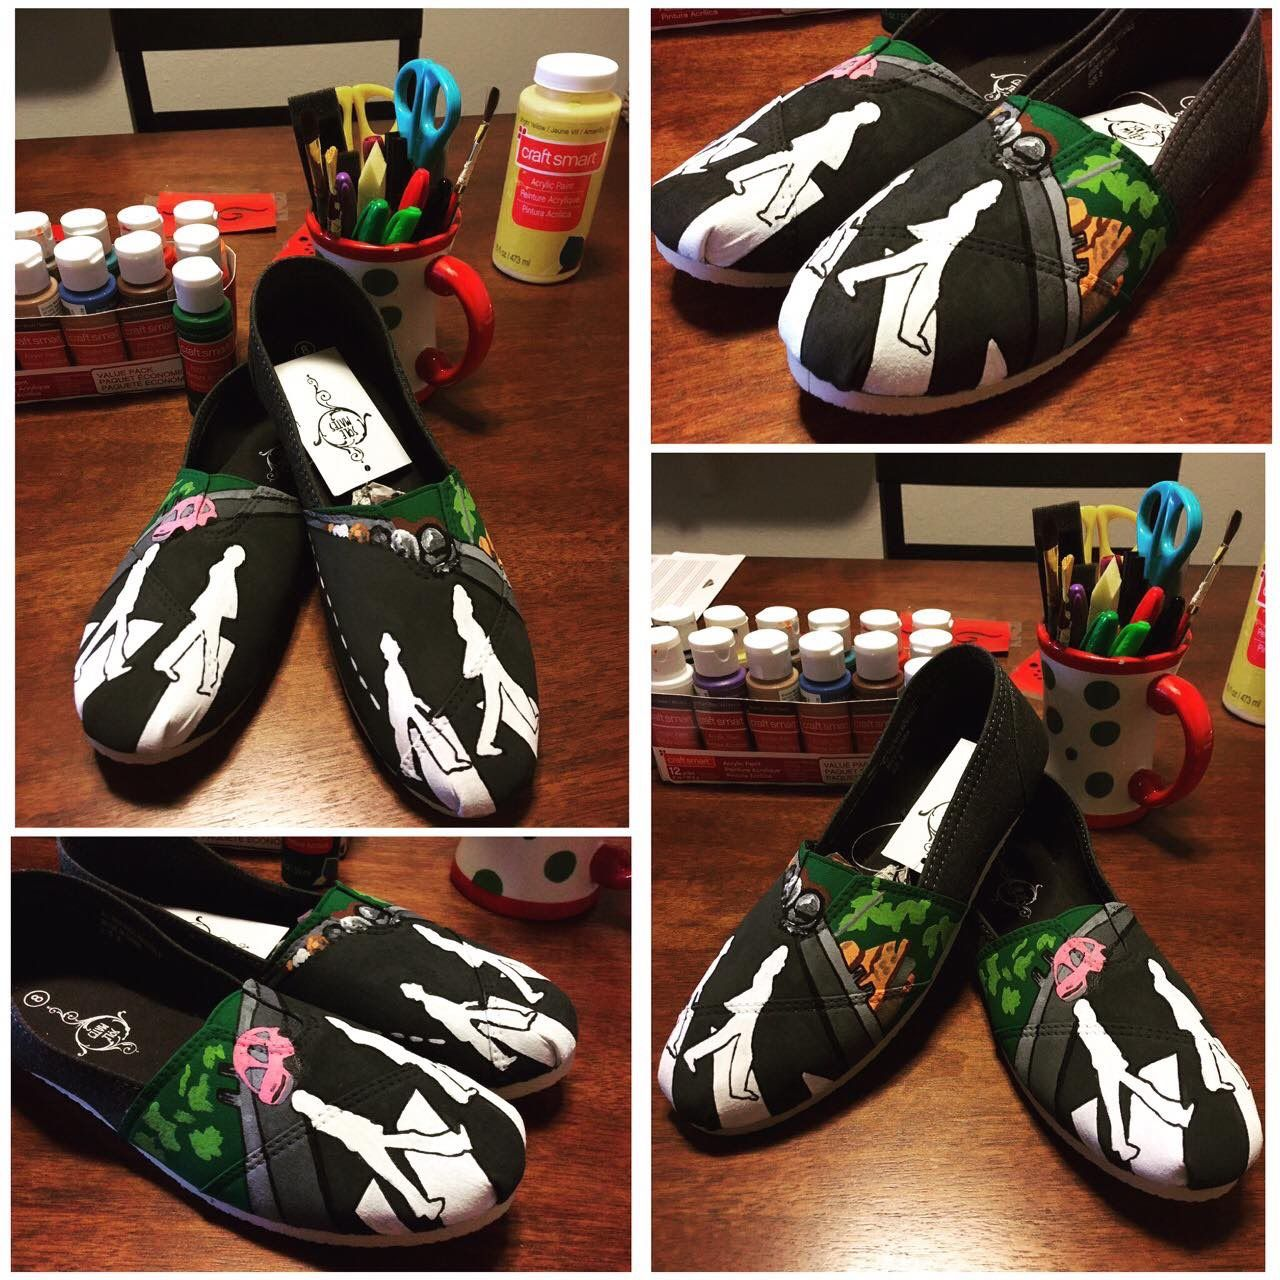 2bd0e5b7ecf28 The Beatles 'Abbey Road' hand painted canvas shoes   My painted ...